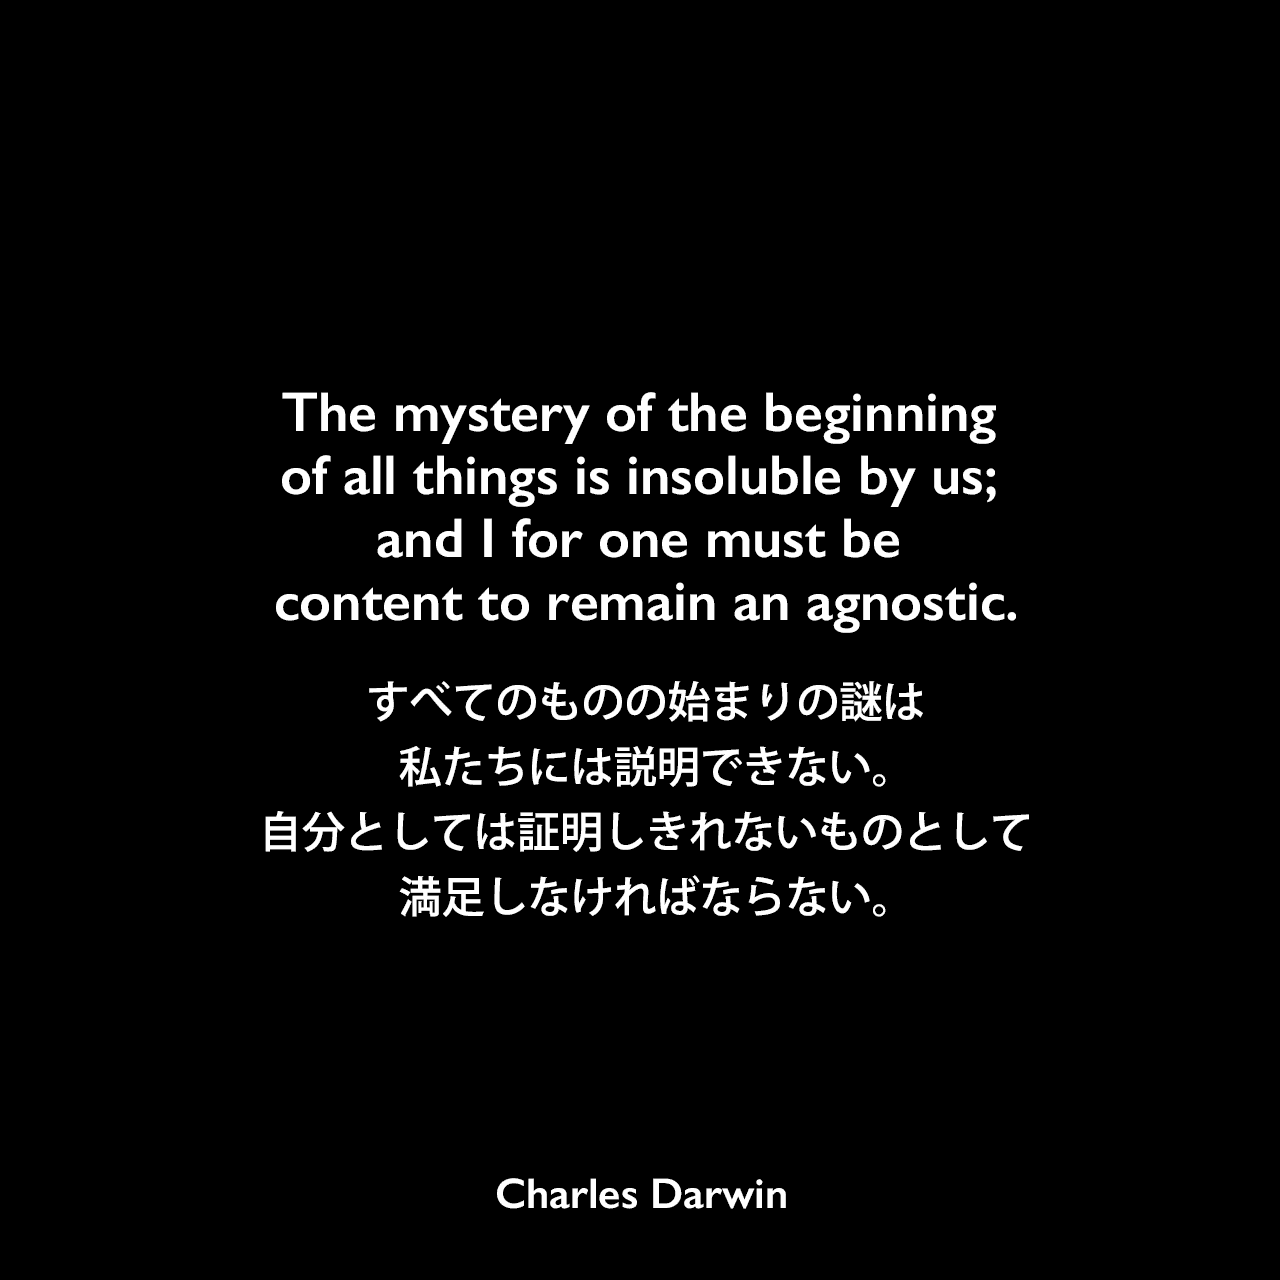 The mystery of the beginning of all things is insoluble by us; and I for one must be content to remain an agnostic.すべてのものの始まりの謎は私たちには説明できない。 自分としては証明しきれないものとして満足しなければならない。- ダーウィンの本「The Life and Letters of Charles Darwin」よりCharles Darwin